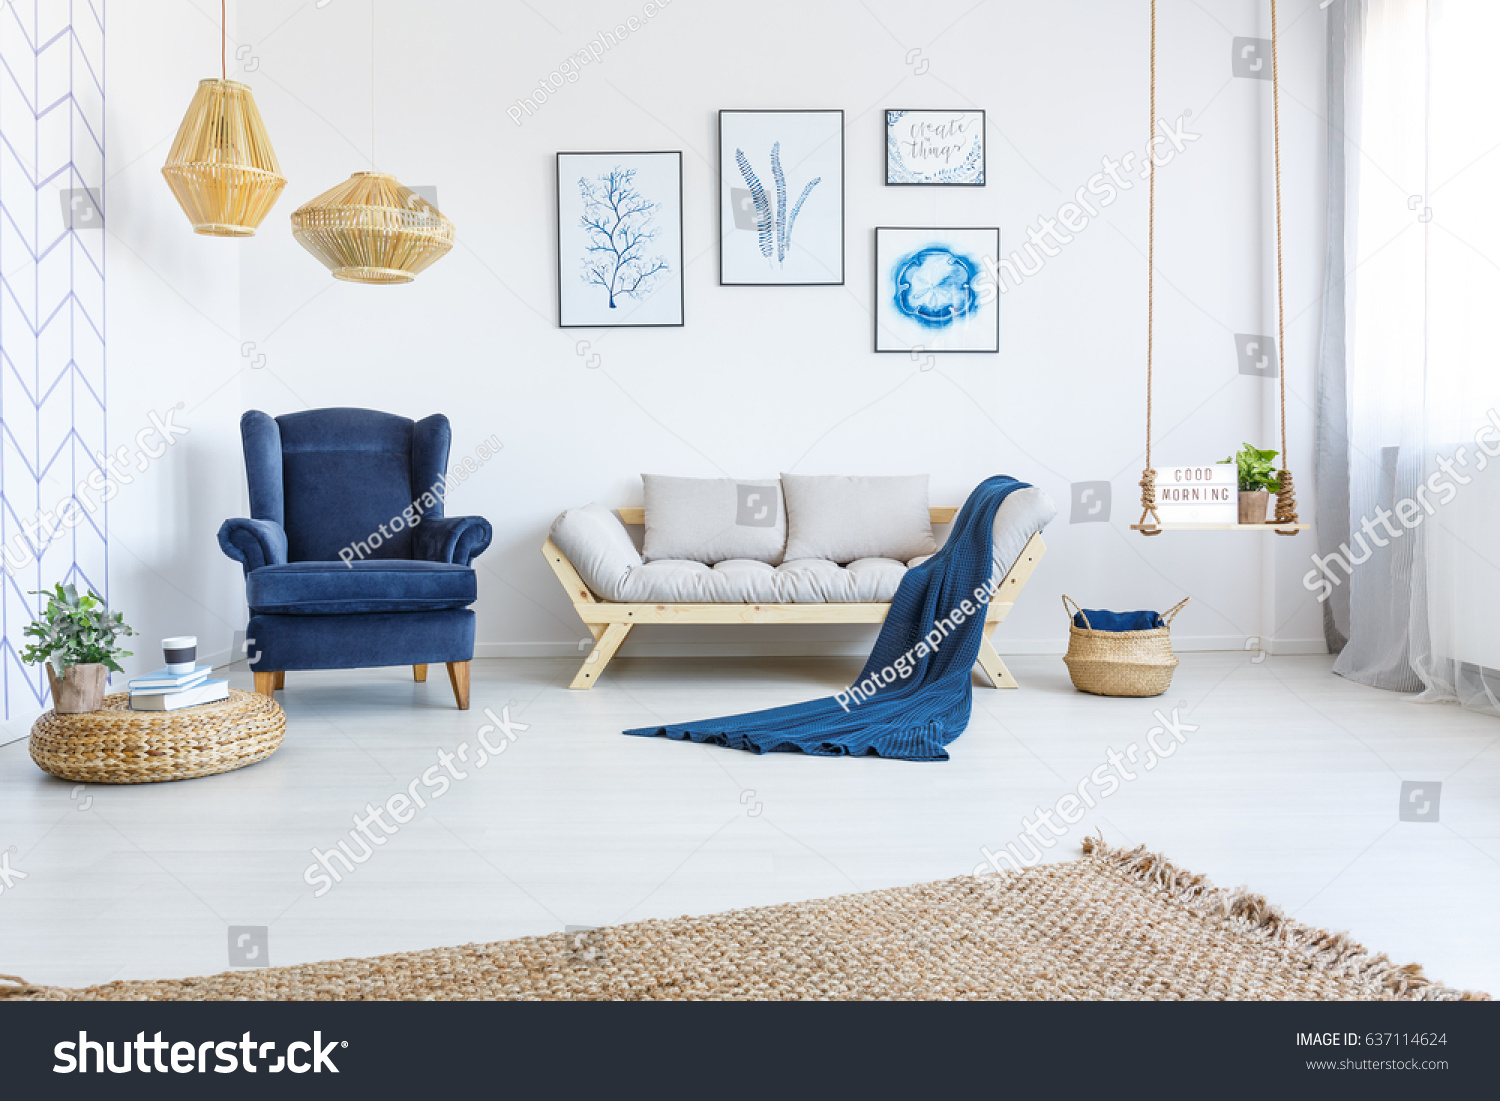 White Home Interior Sofa Armchair Posters Stock Photo 637114624